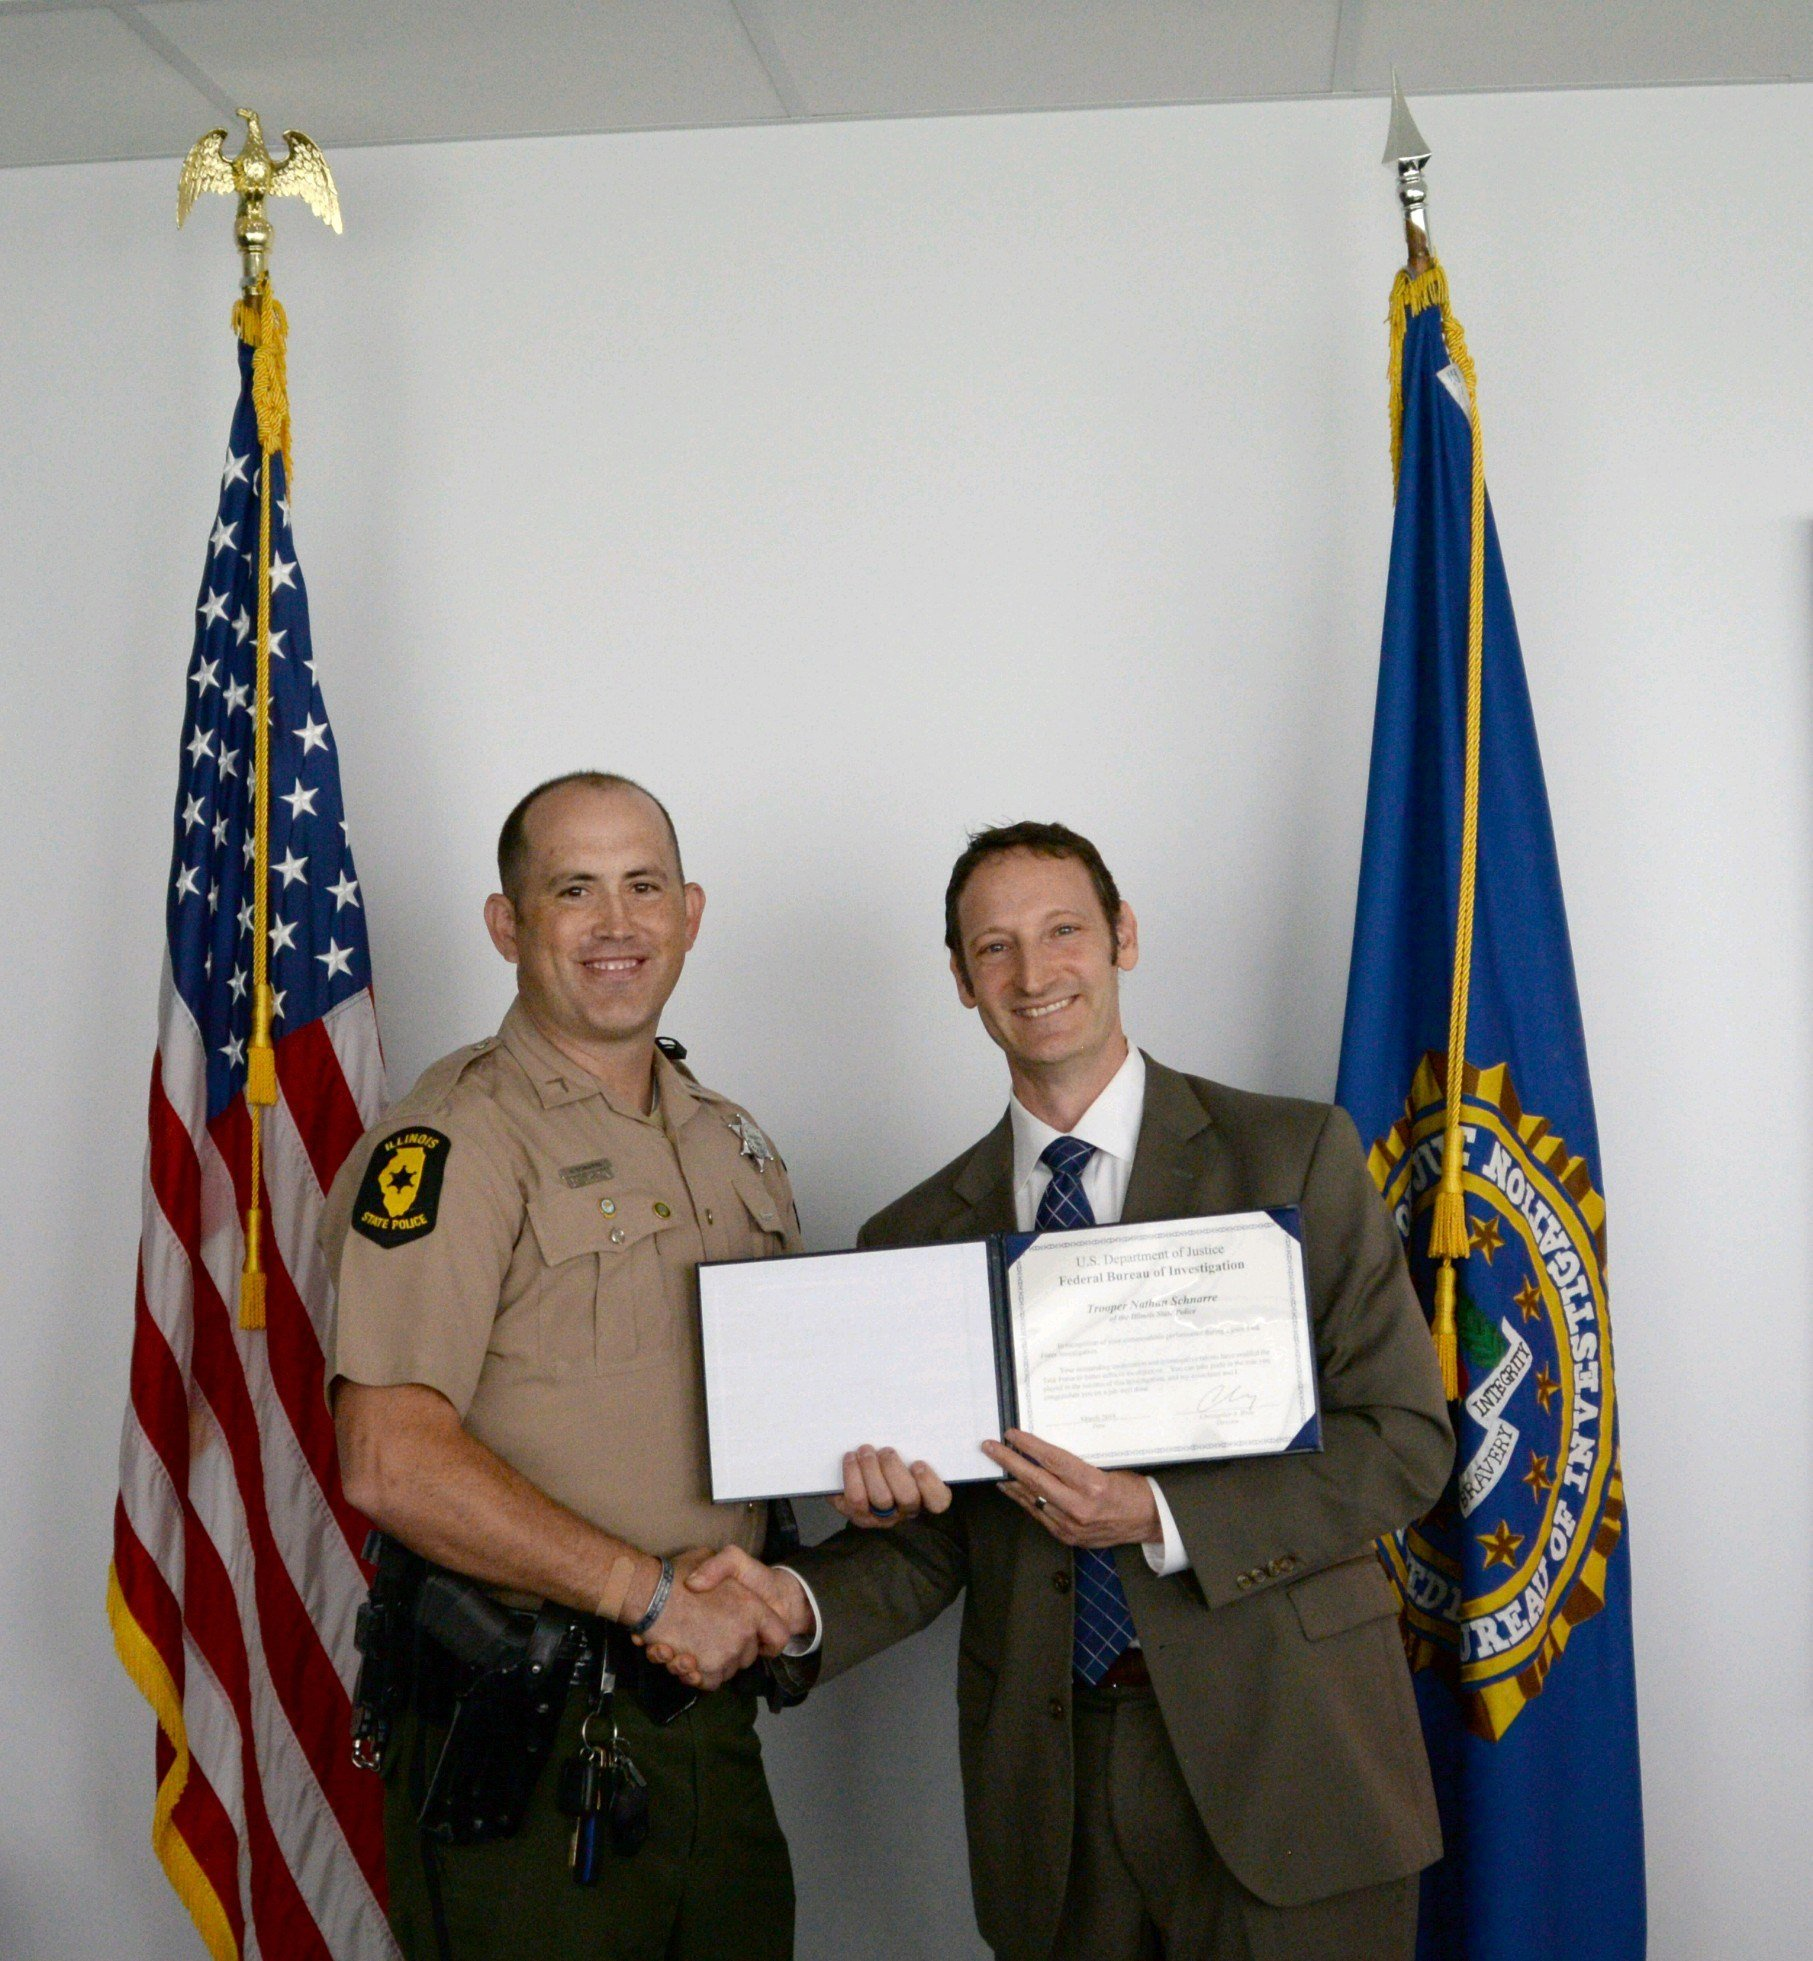 Pictured: Trooper Nathan Schnarre with FBI Asst. Special Agent in Charge Jay Greenberg